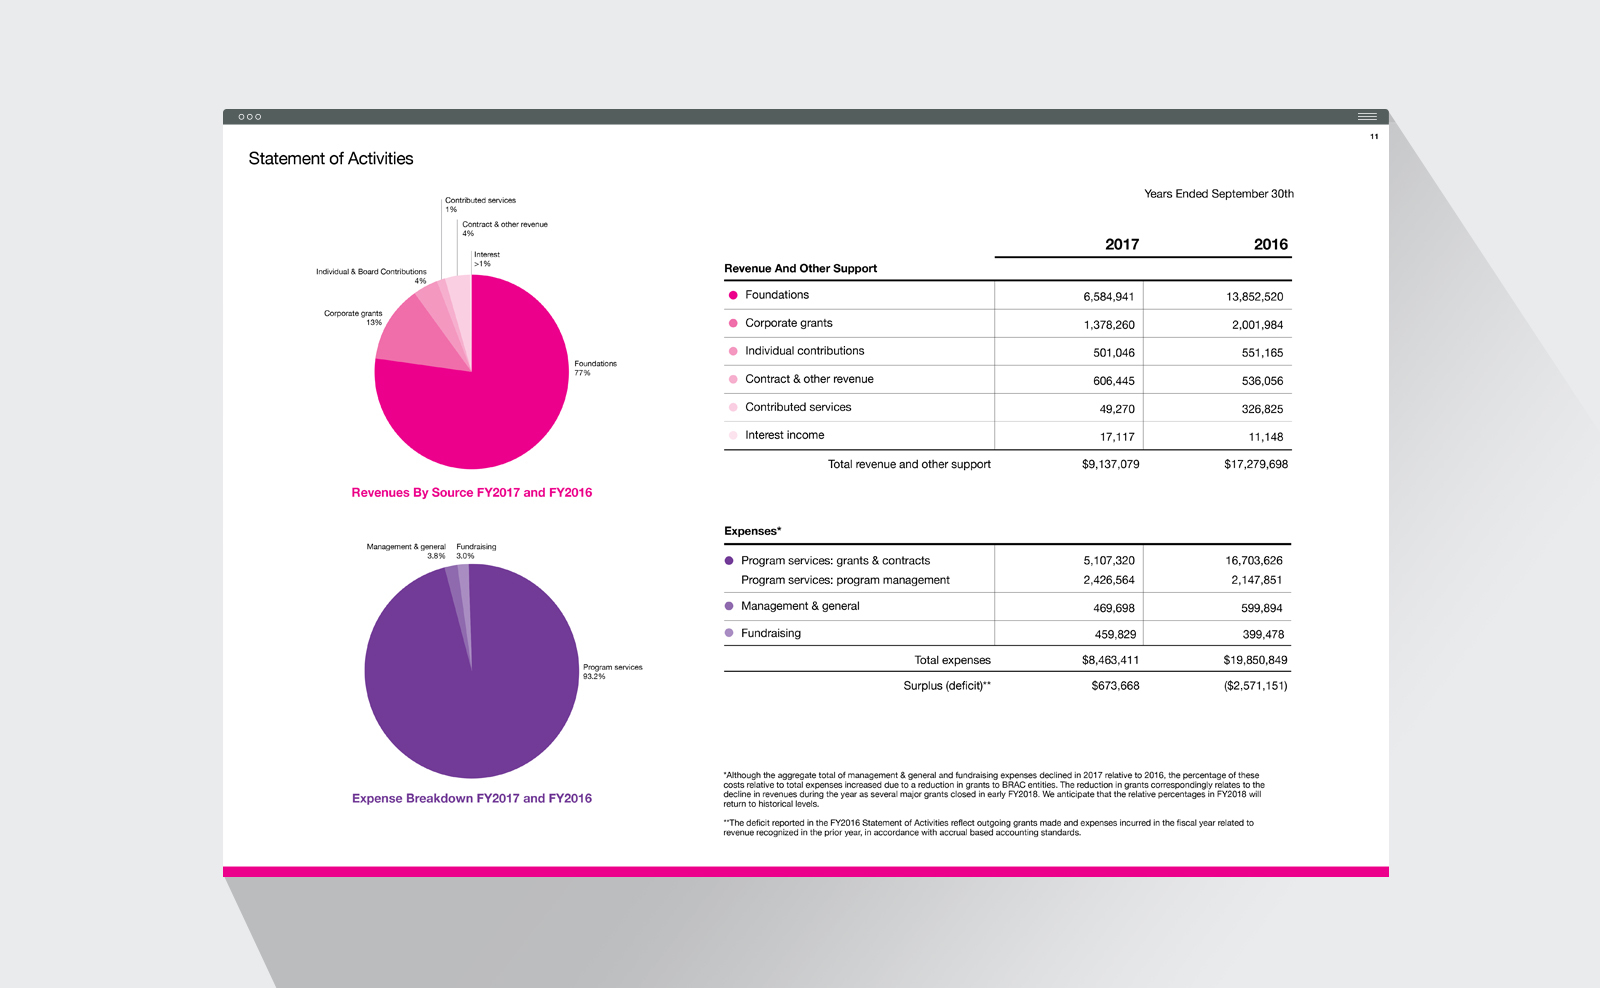 BRAC annual report spread with financial information